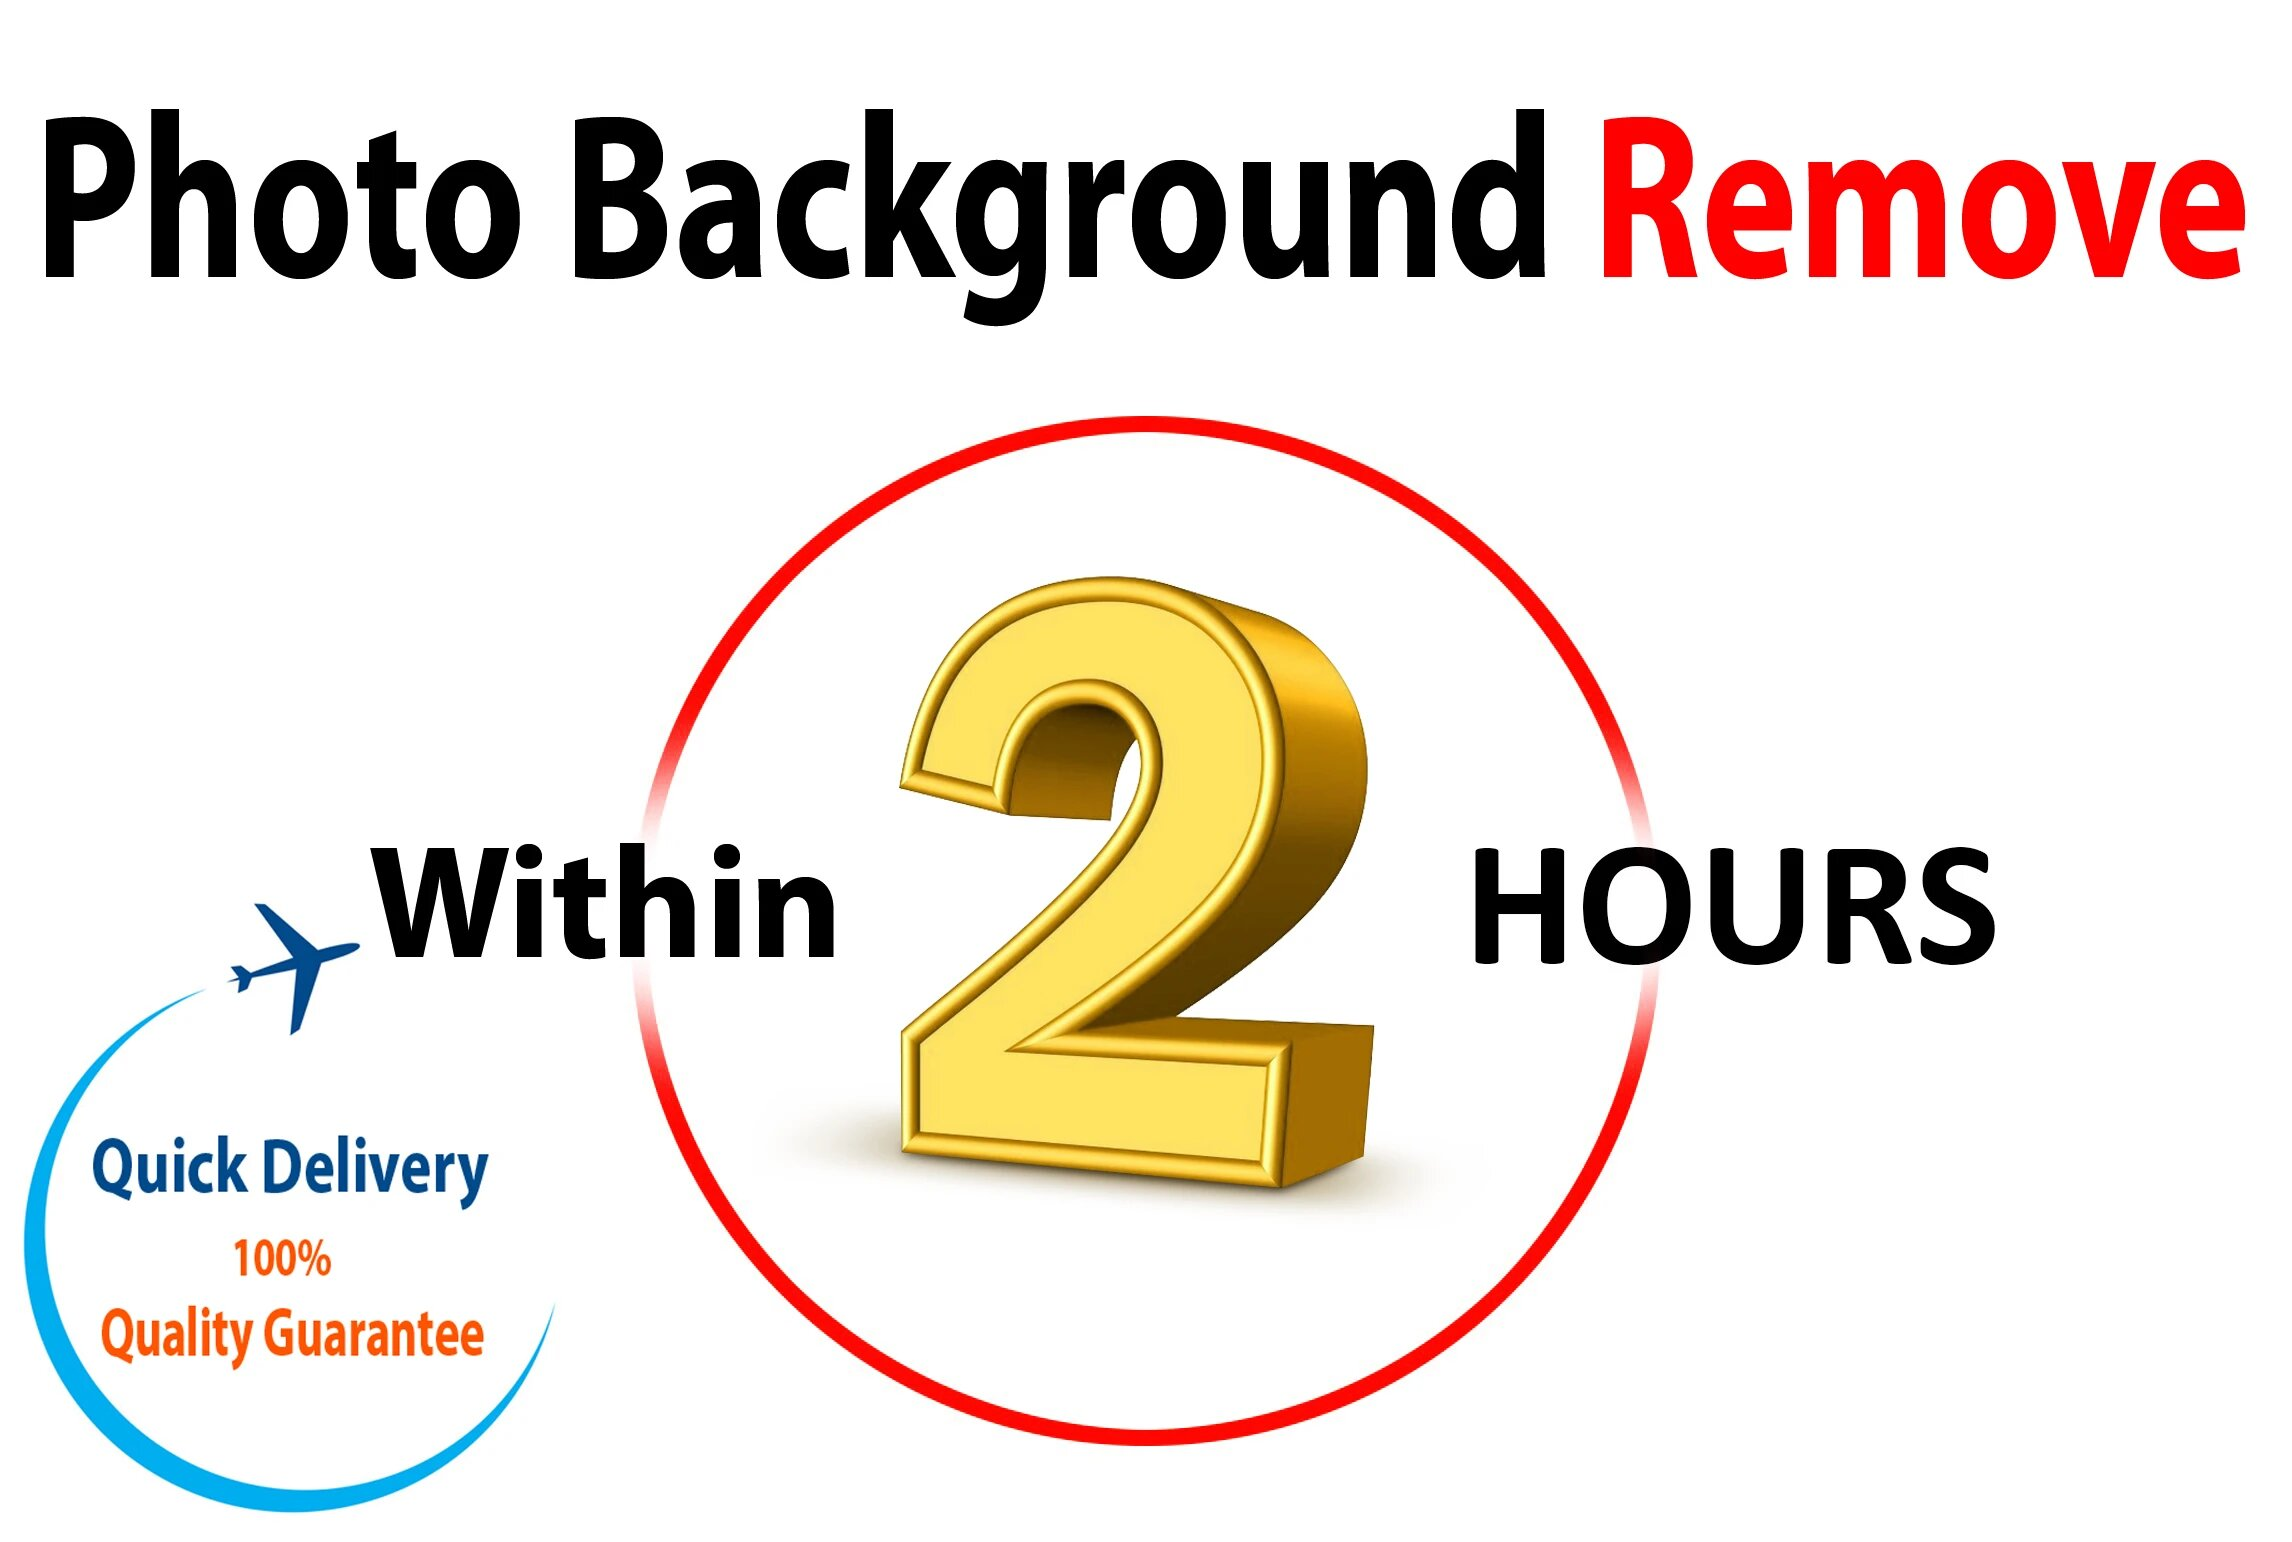 I will remove background from any type of image professionally in 2 hour